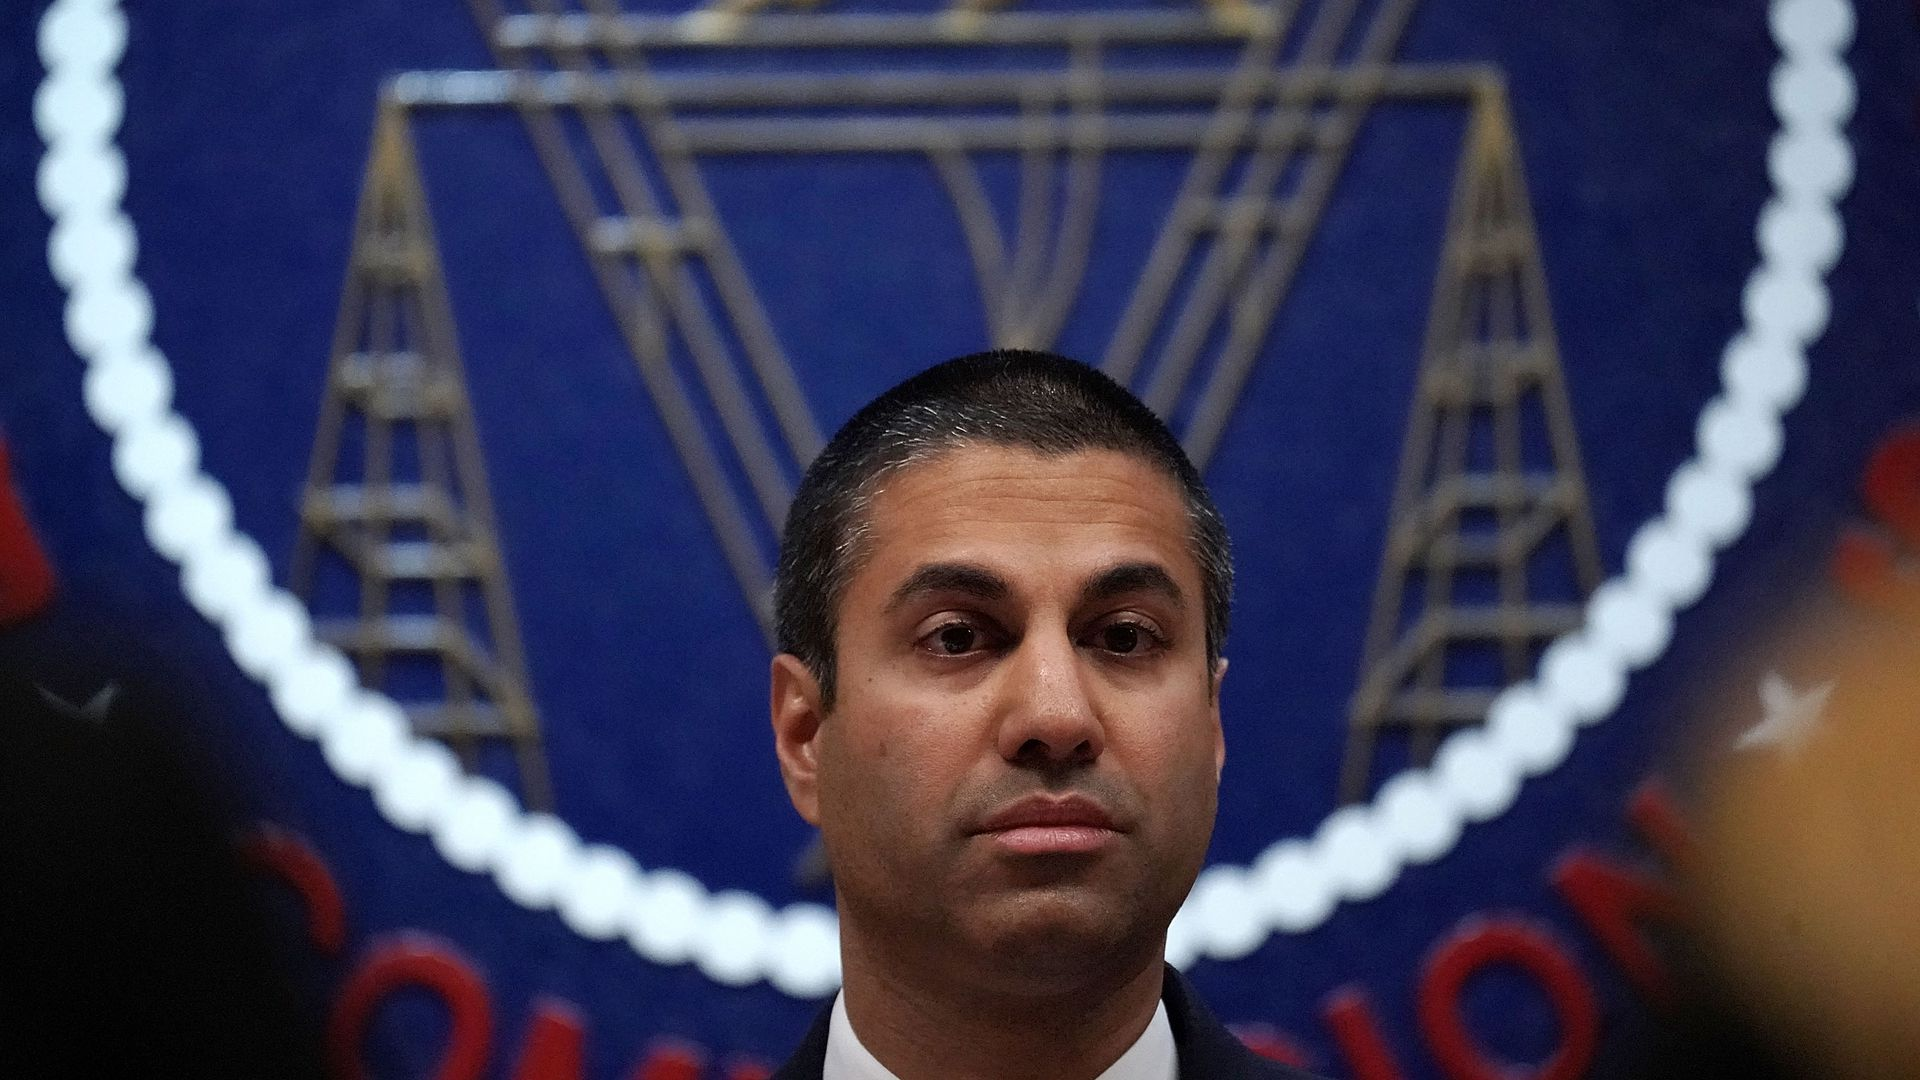 FCC Chairman Ajit Pai sits in front of the seal of the agency